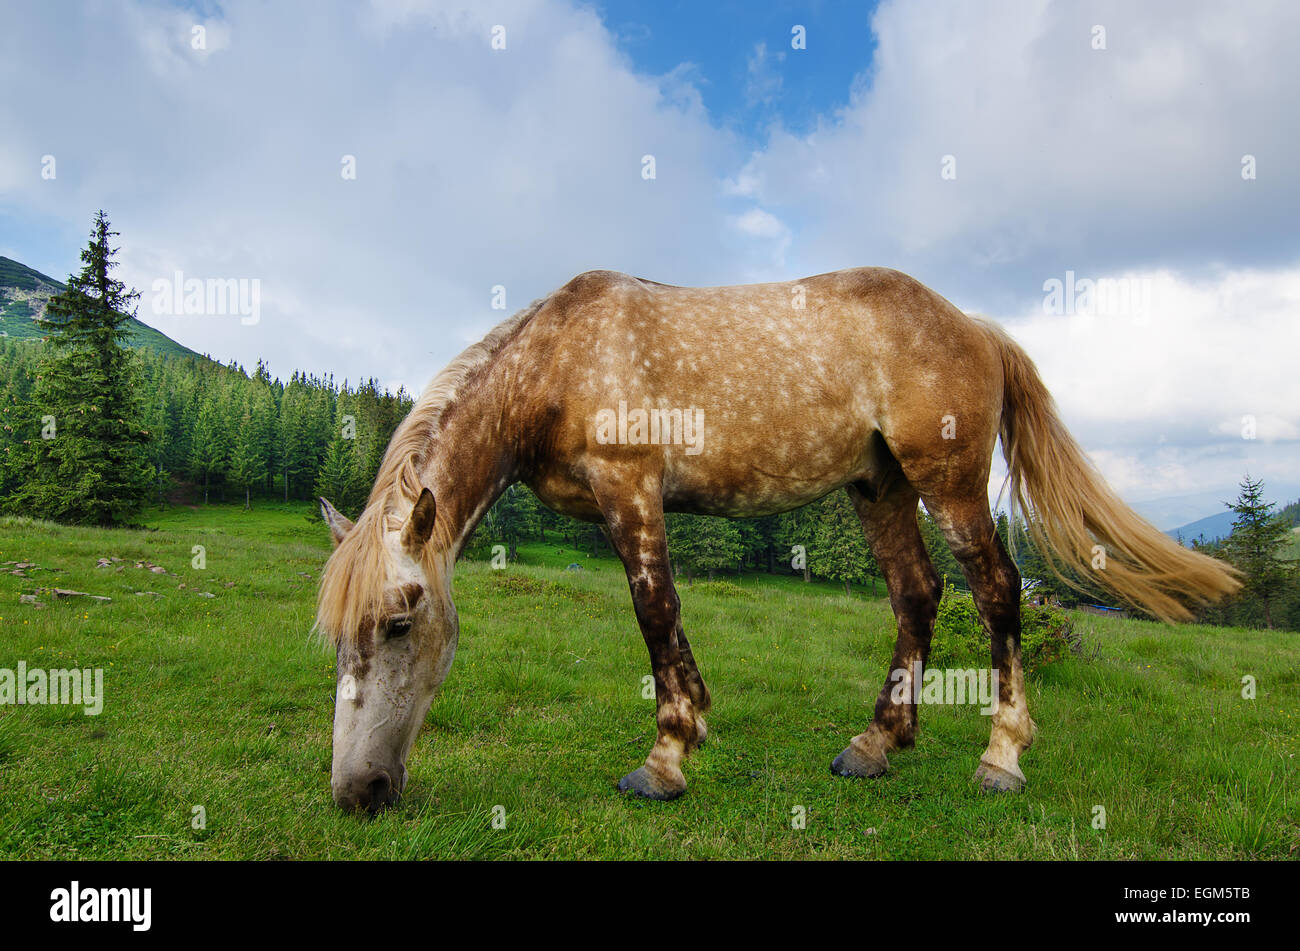 Bay horse grazes in the mountains - Stock Image